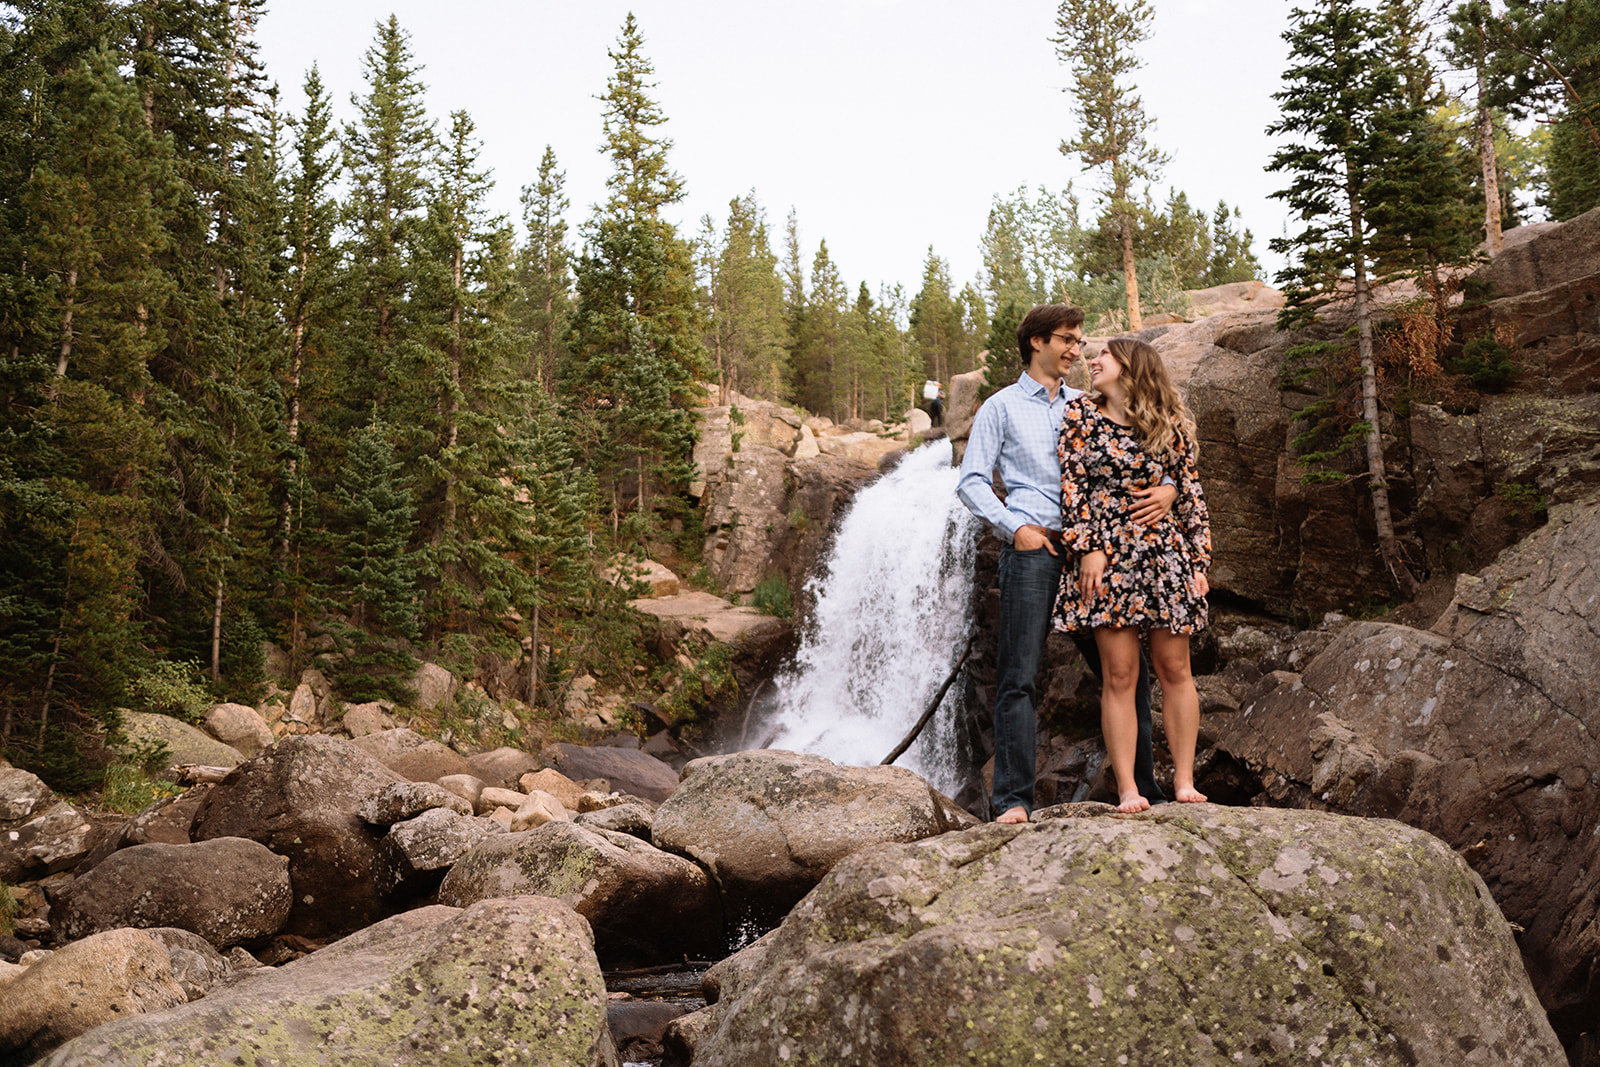 couple engagement outdoors in nature by a water fall